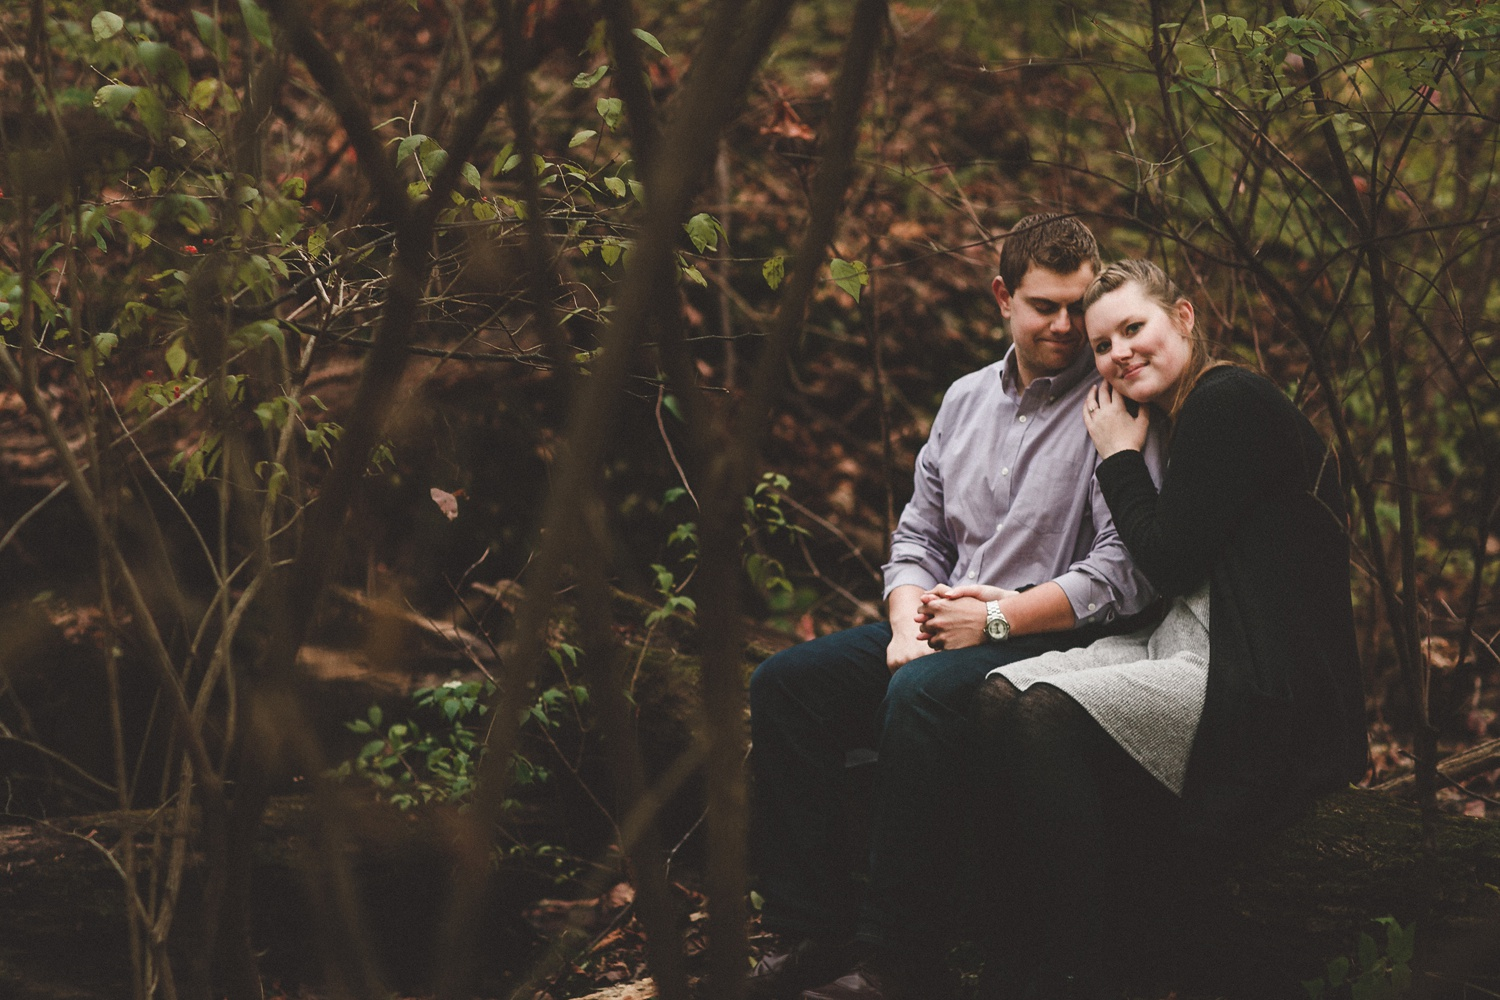 rock_cut_state_park_rockford_IL_engagement_photographer_0019.jpg